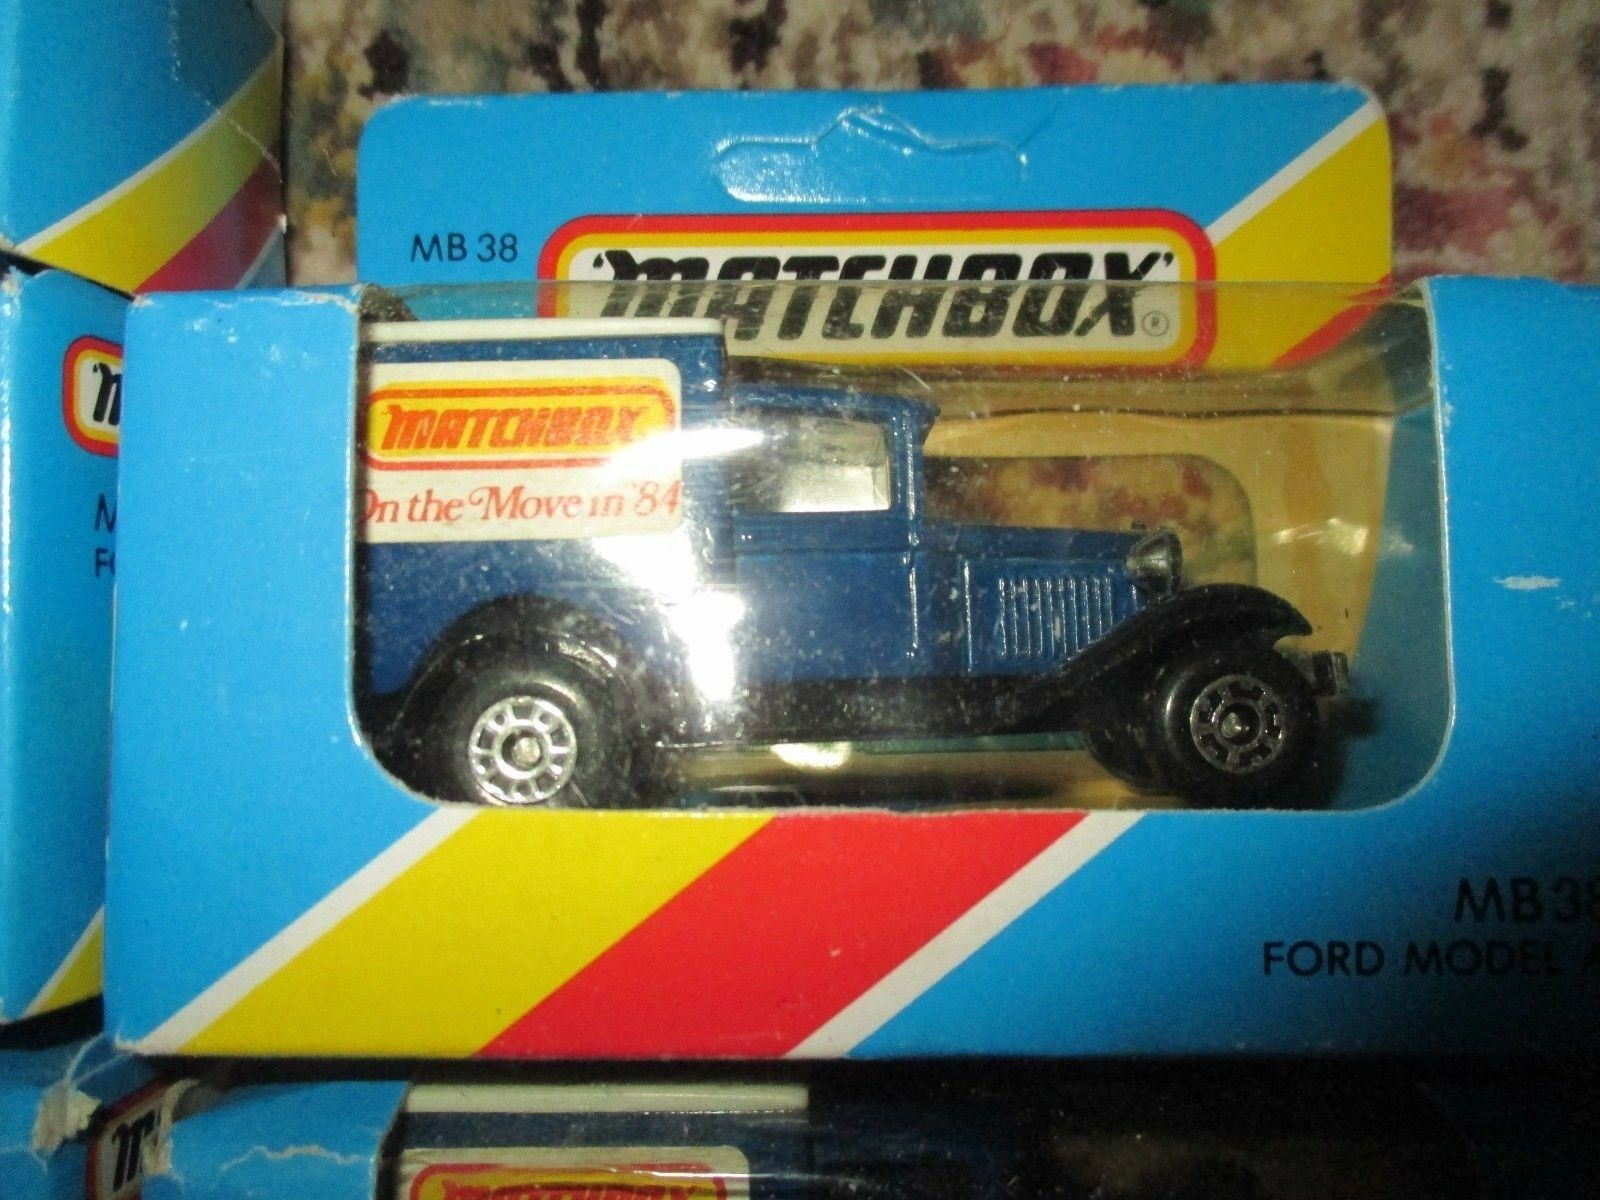 92 MATCHBOX MB38  MATCHBOX on the move in' 84  MODEL A FORD camions W Free ship